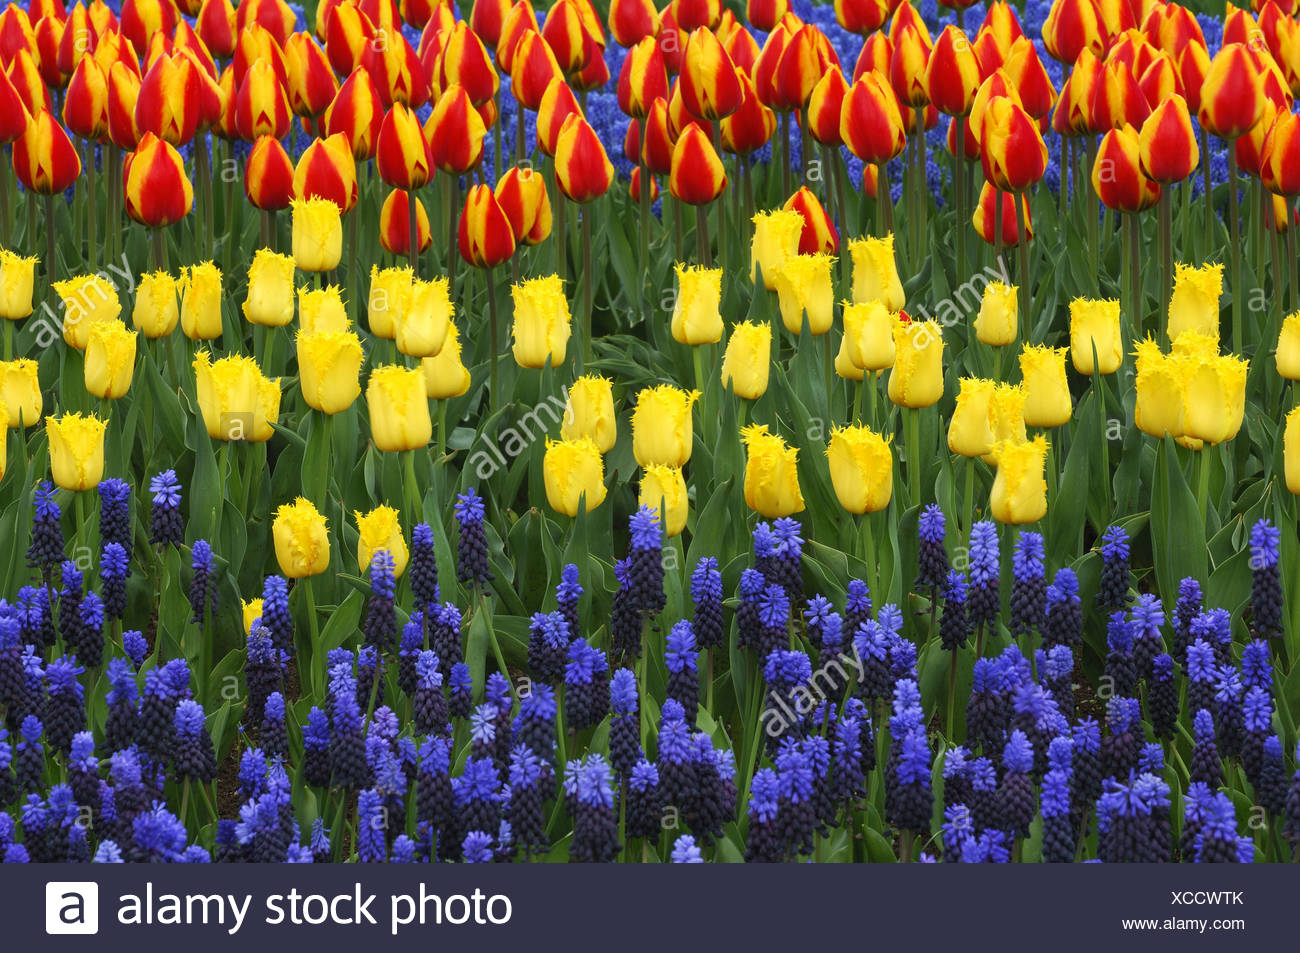 common garden tulip (Tulipa gesneriana), flowerbeds with garden tulips and common grape hyacinths, Muscari botryoides Stock Photo